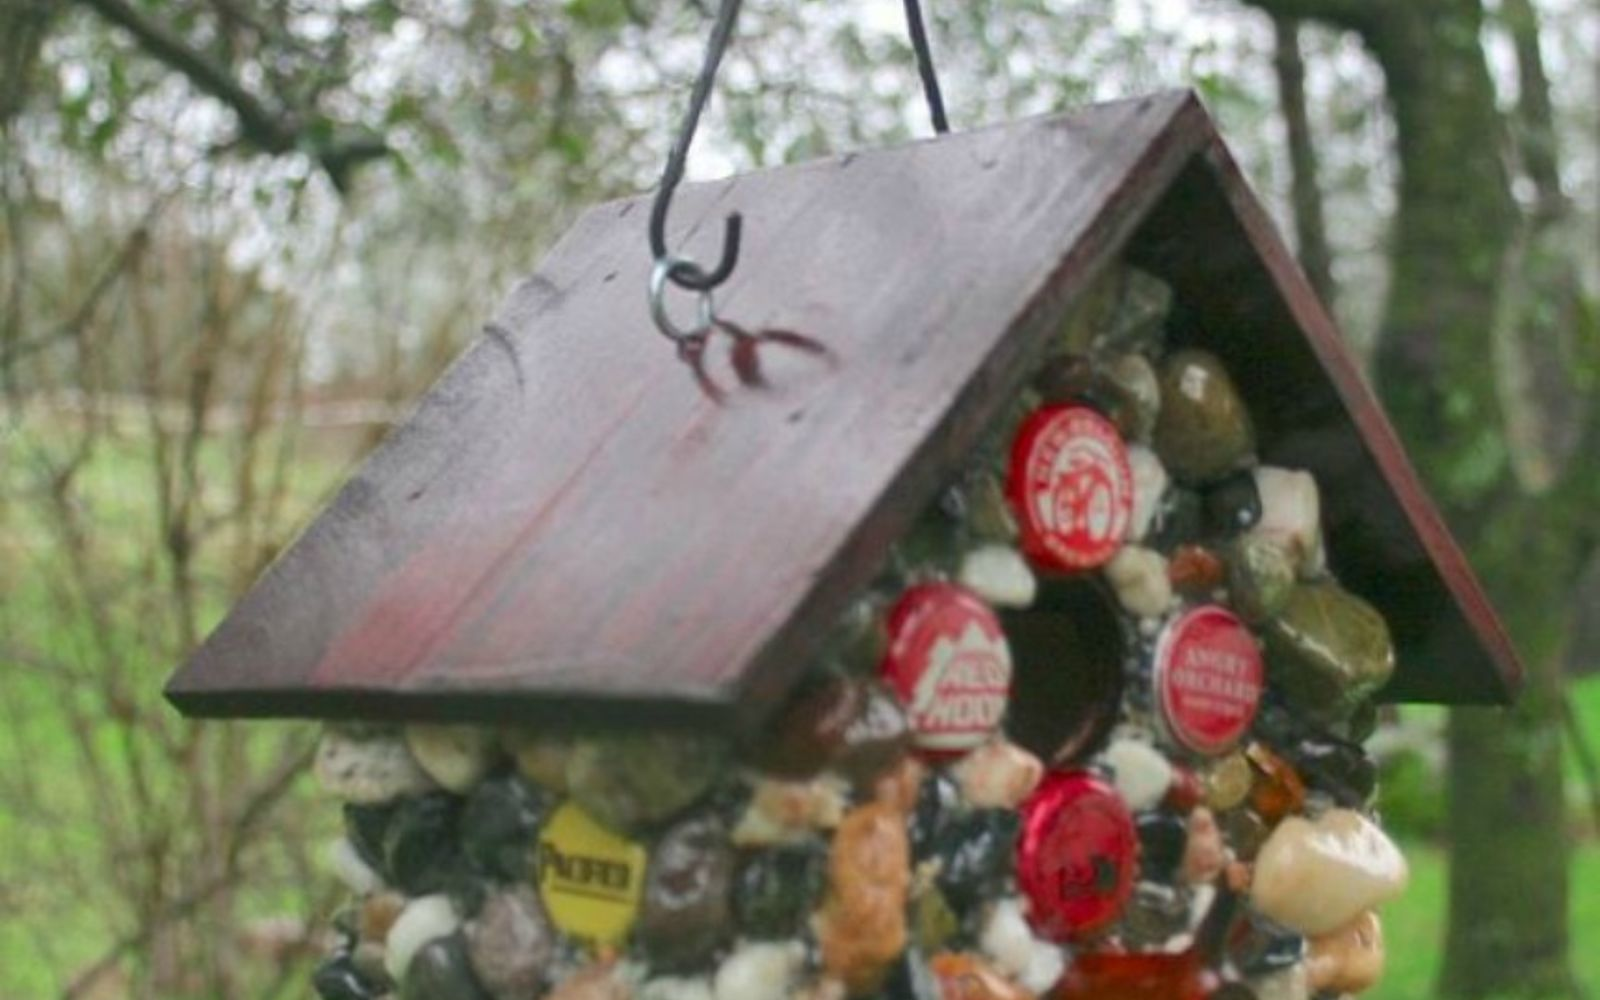 s 11 impressive ways to update your home with stone, concrete masonry, home decor, Decorate a cute birdhouse with them